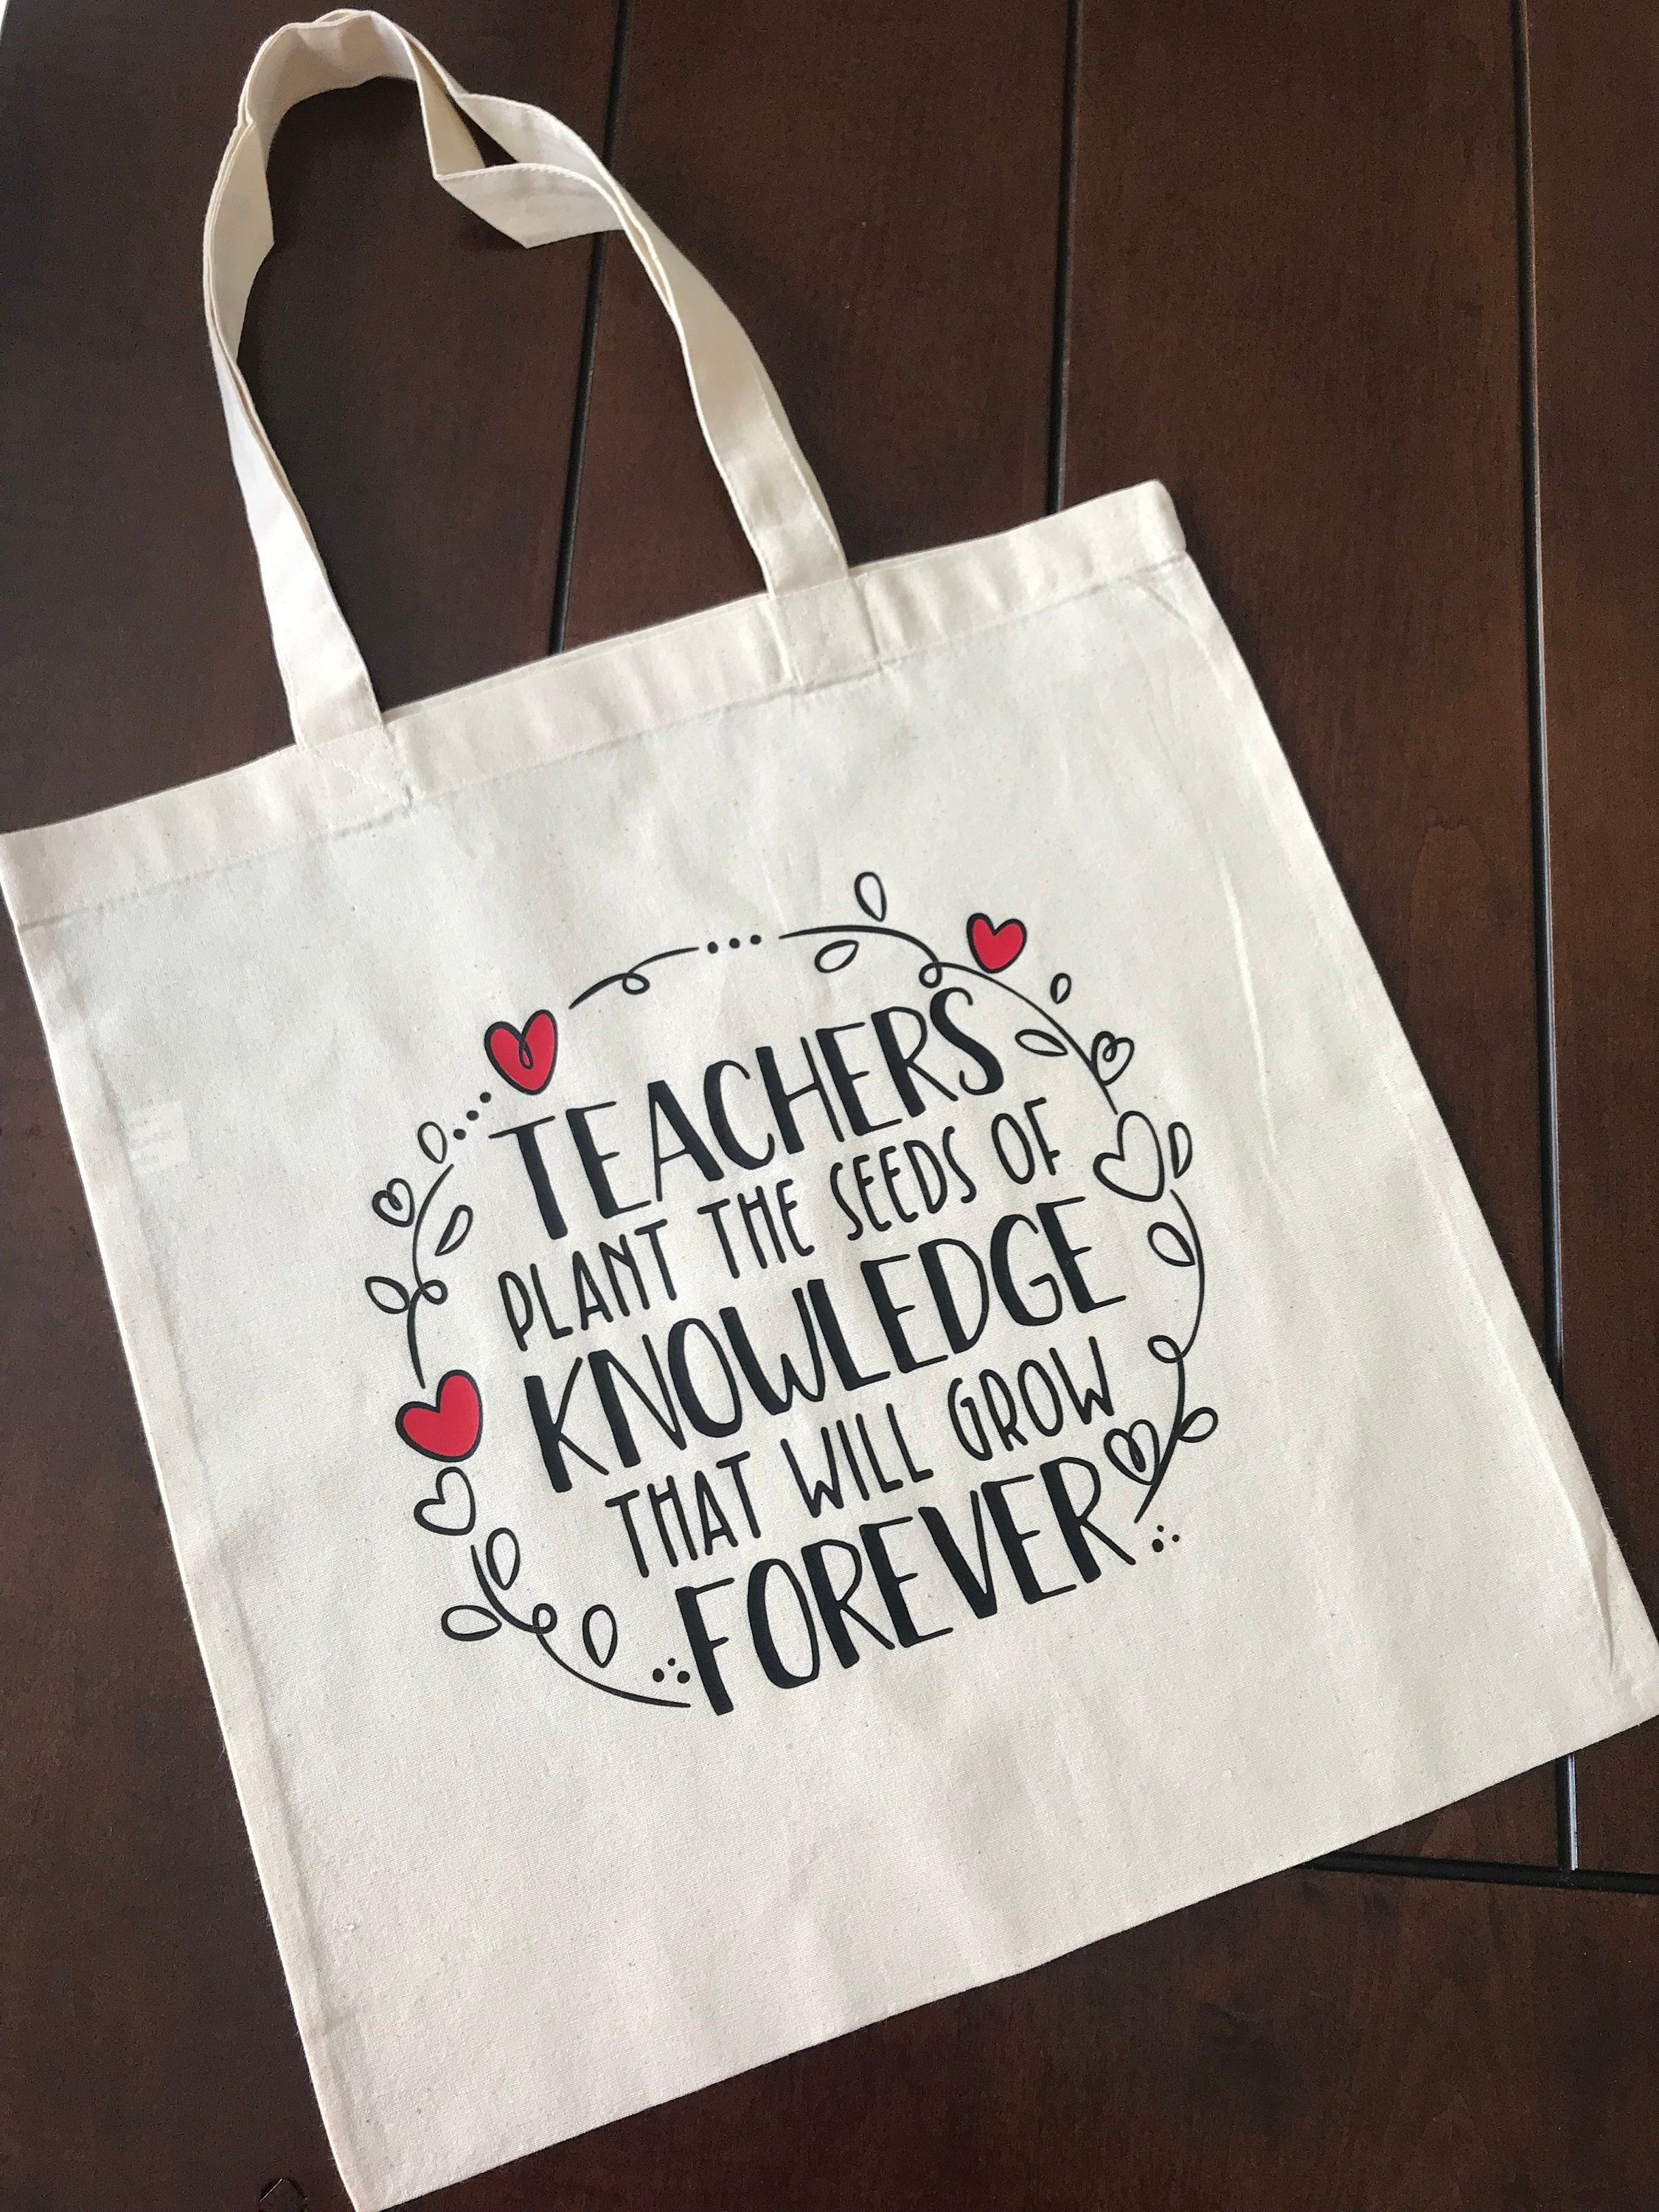 can be fully personalised Teachers plant seeds of knowledge that grow forever Tote Bag